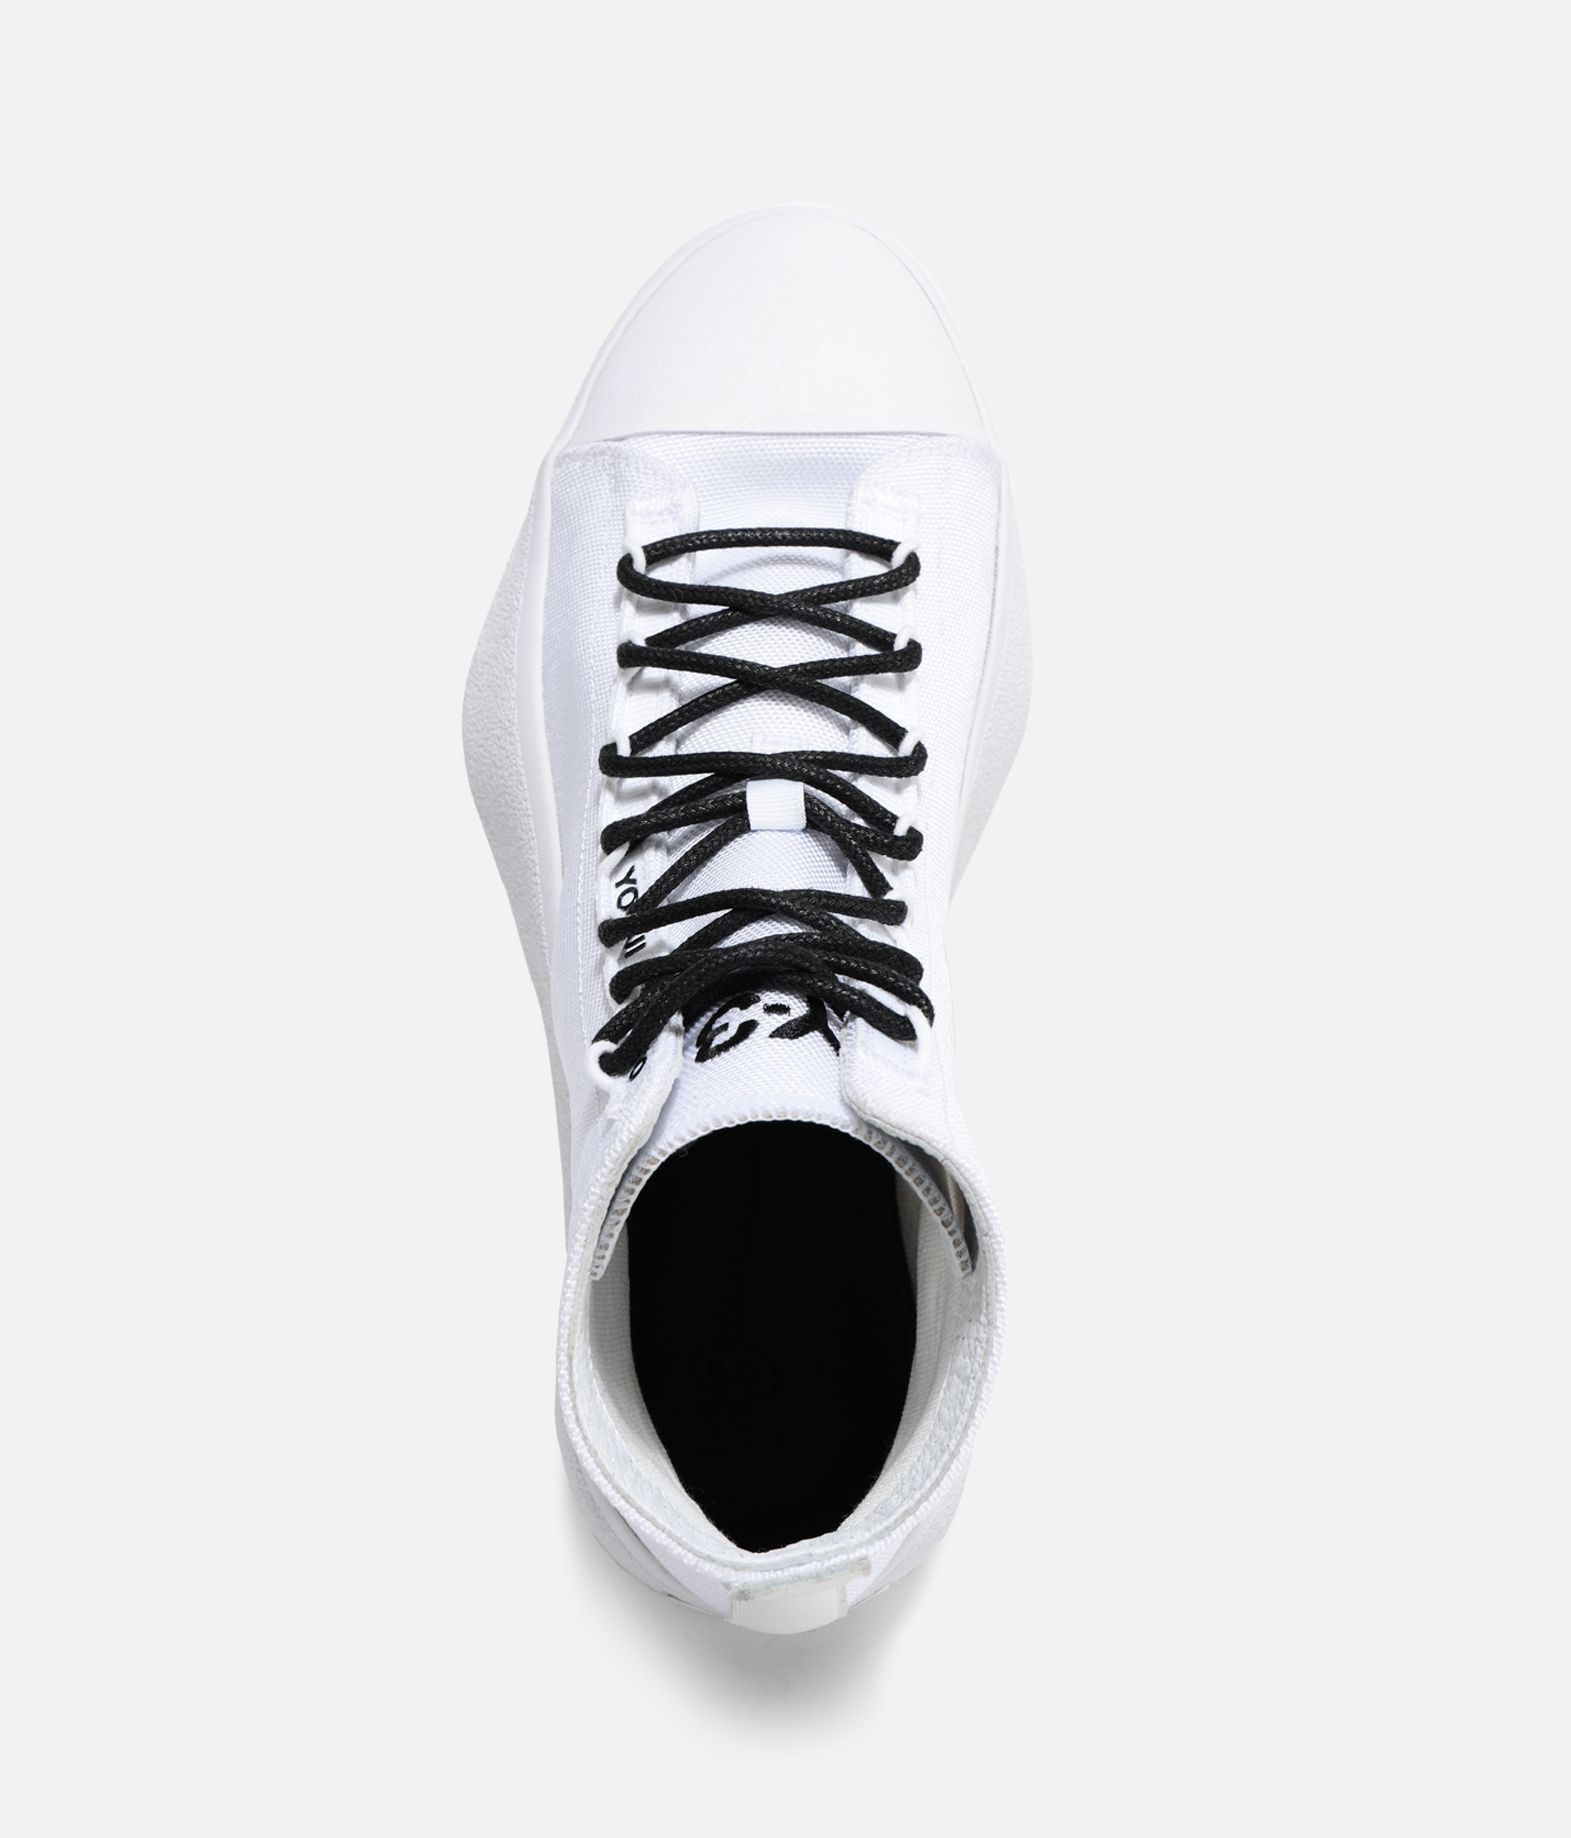 Y-3 Y-3 Bashyo High-top sneakers E c